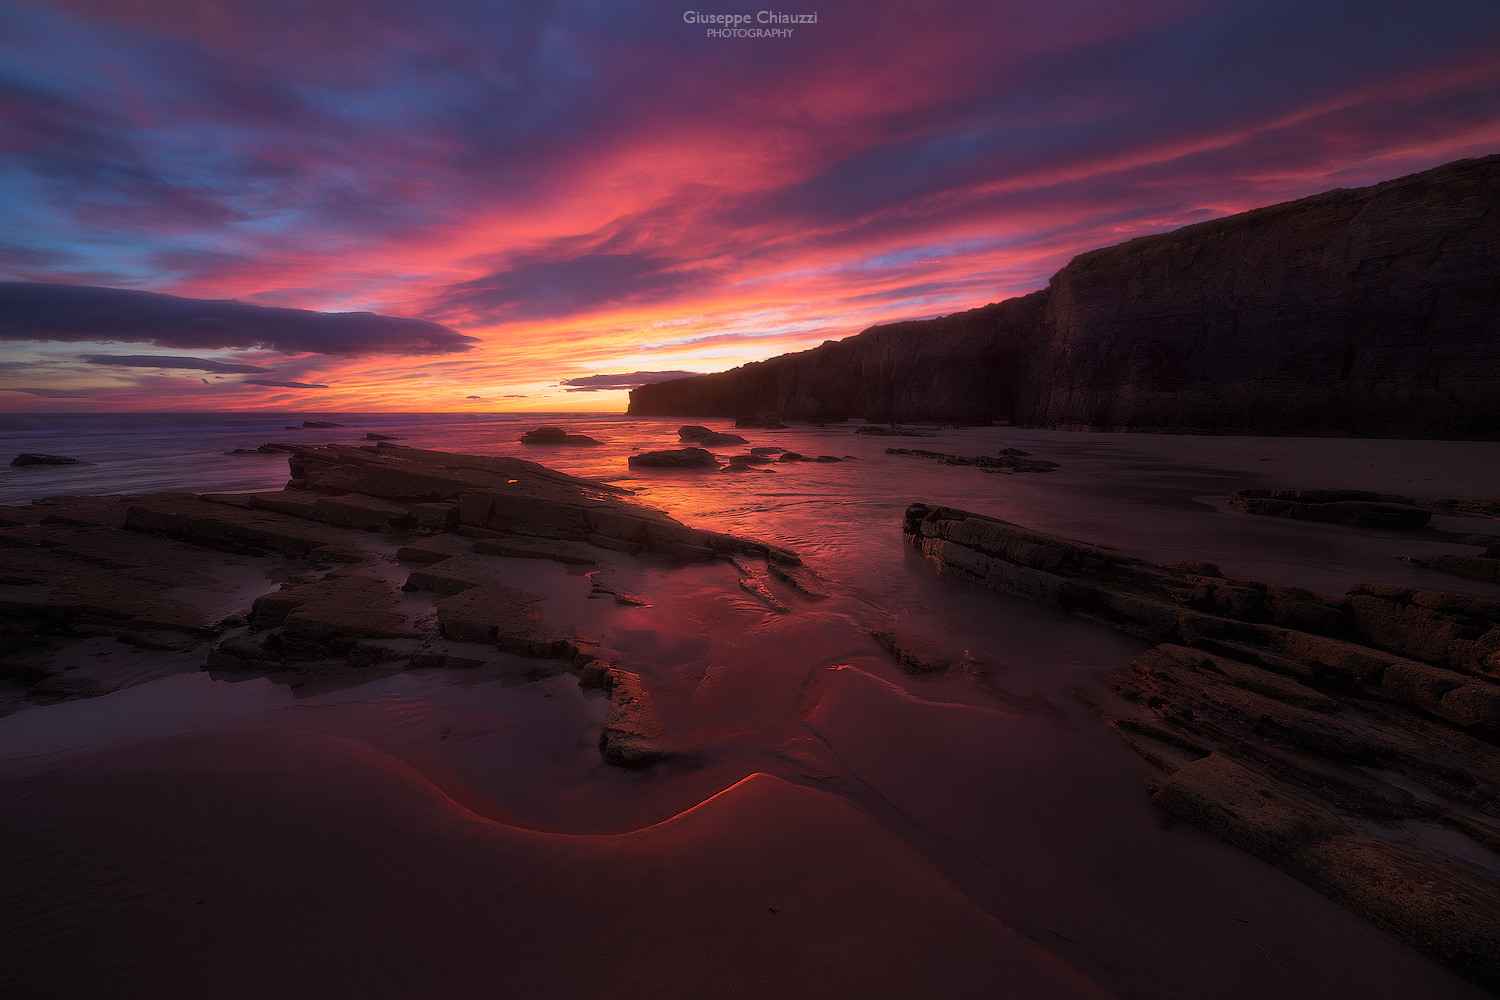 When the first light warms the catedrales